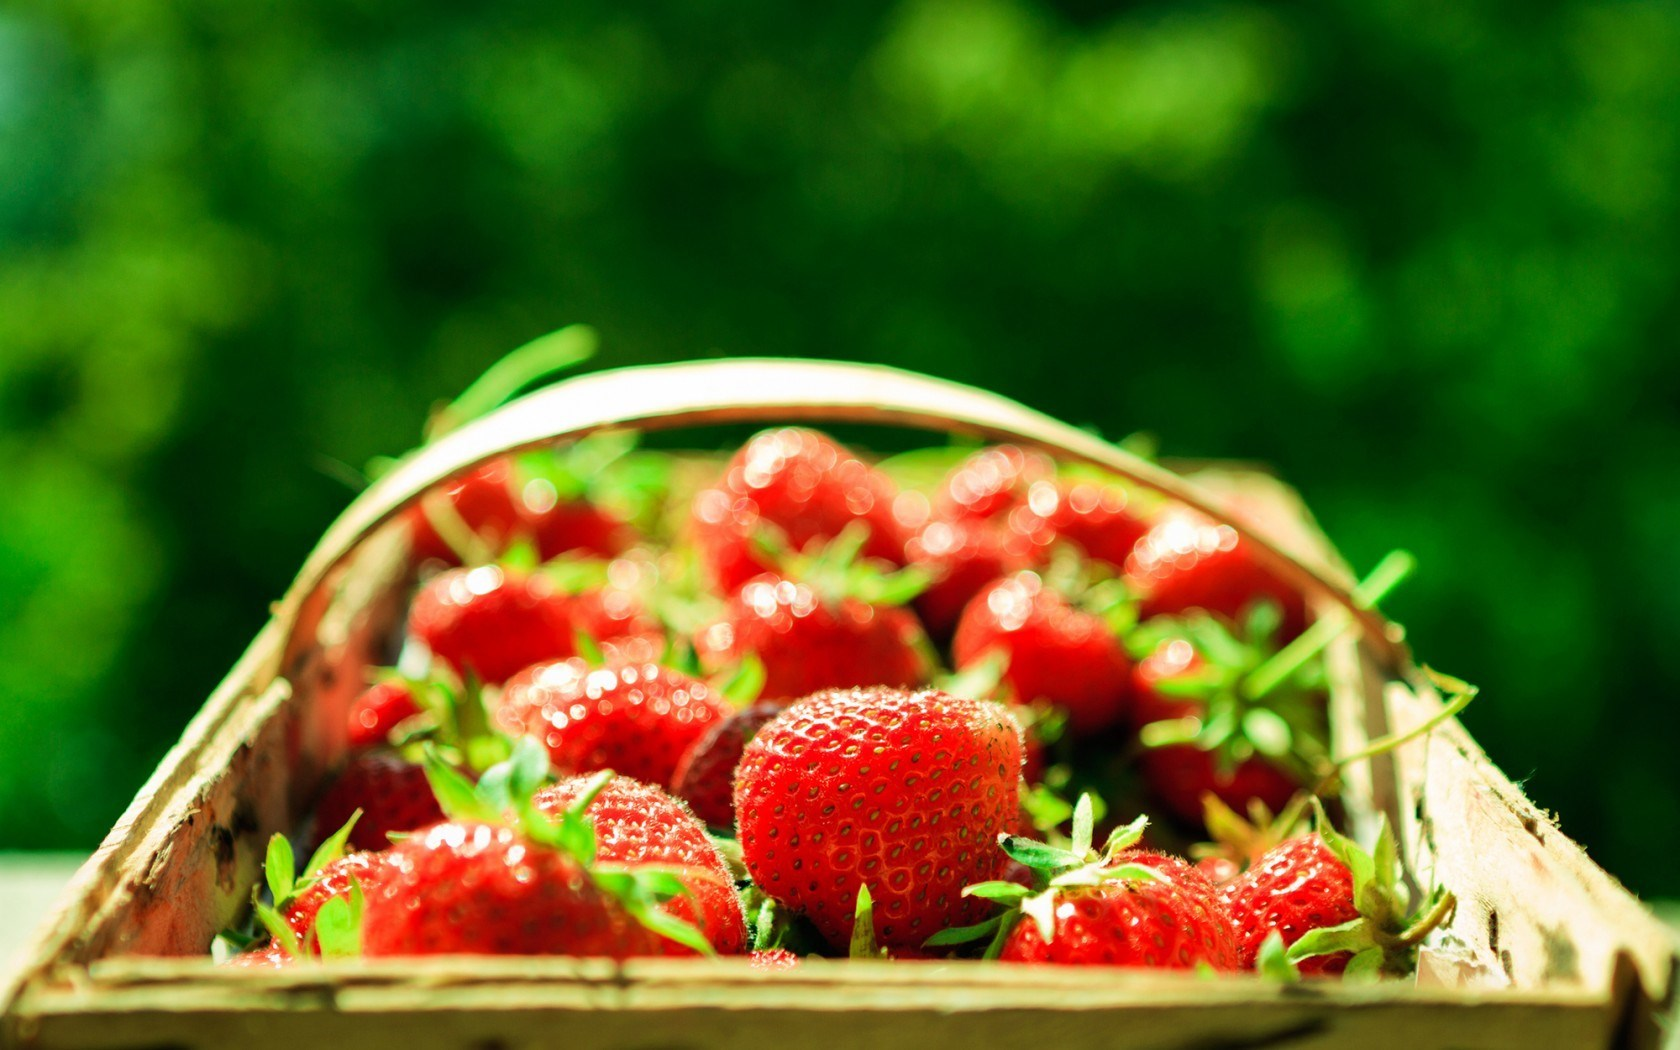 Strawberry Basket Berries Macro